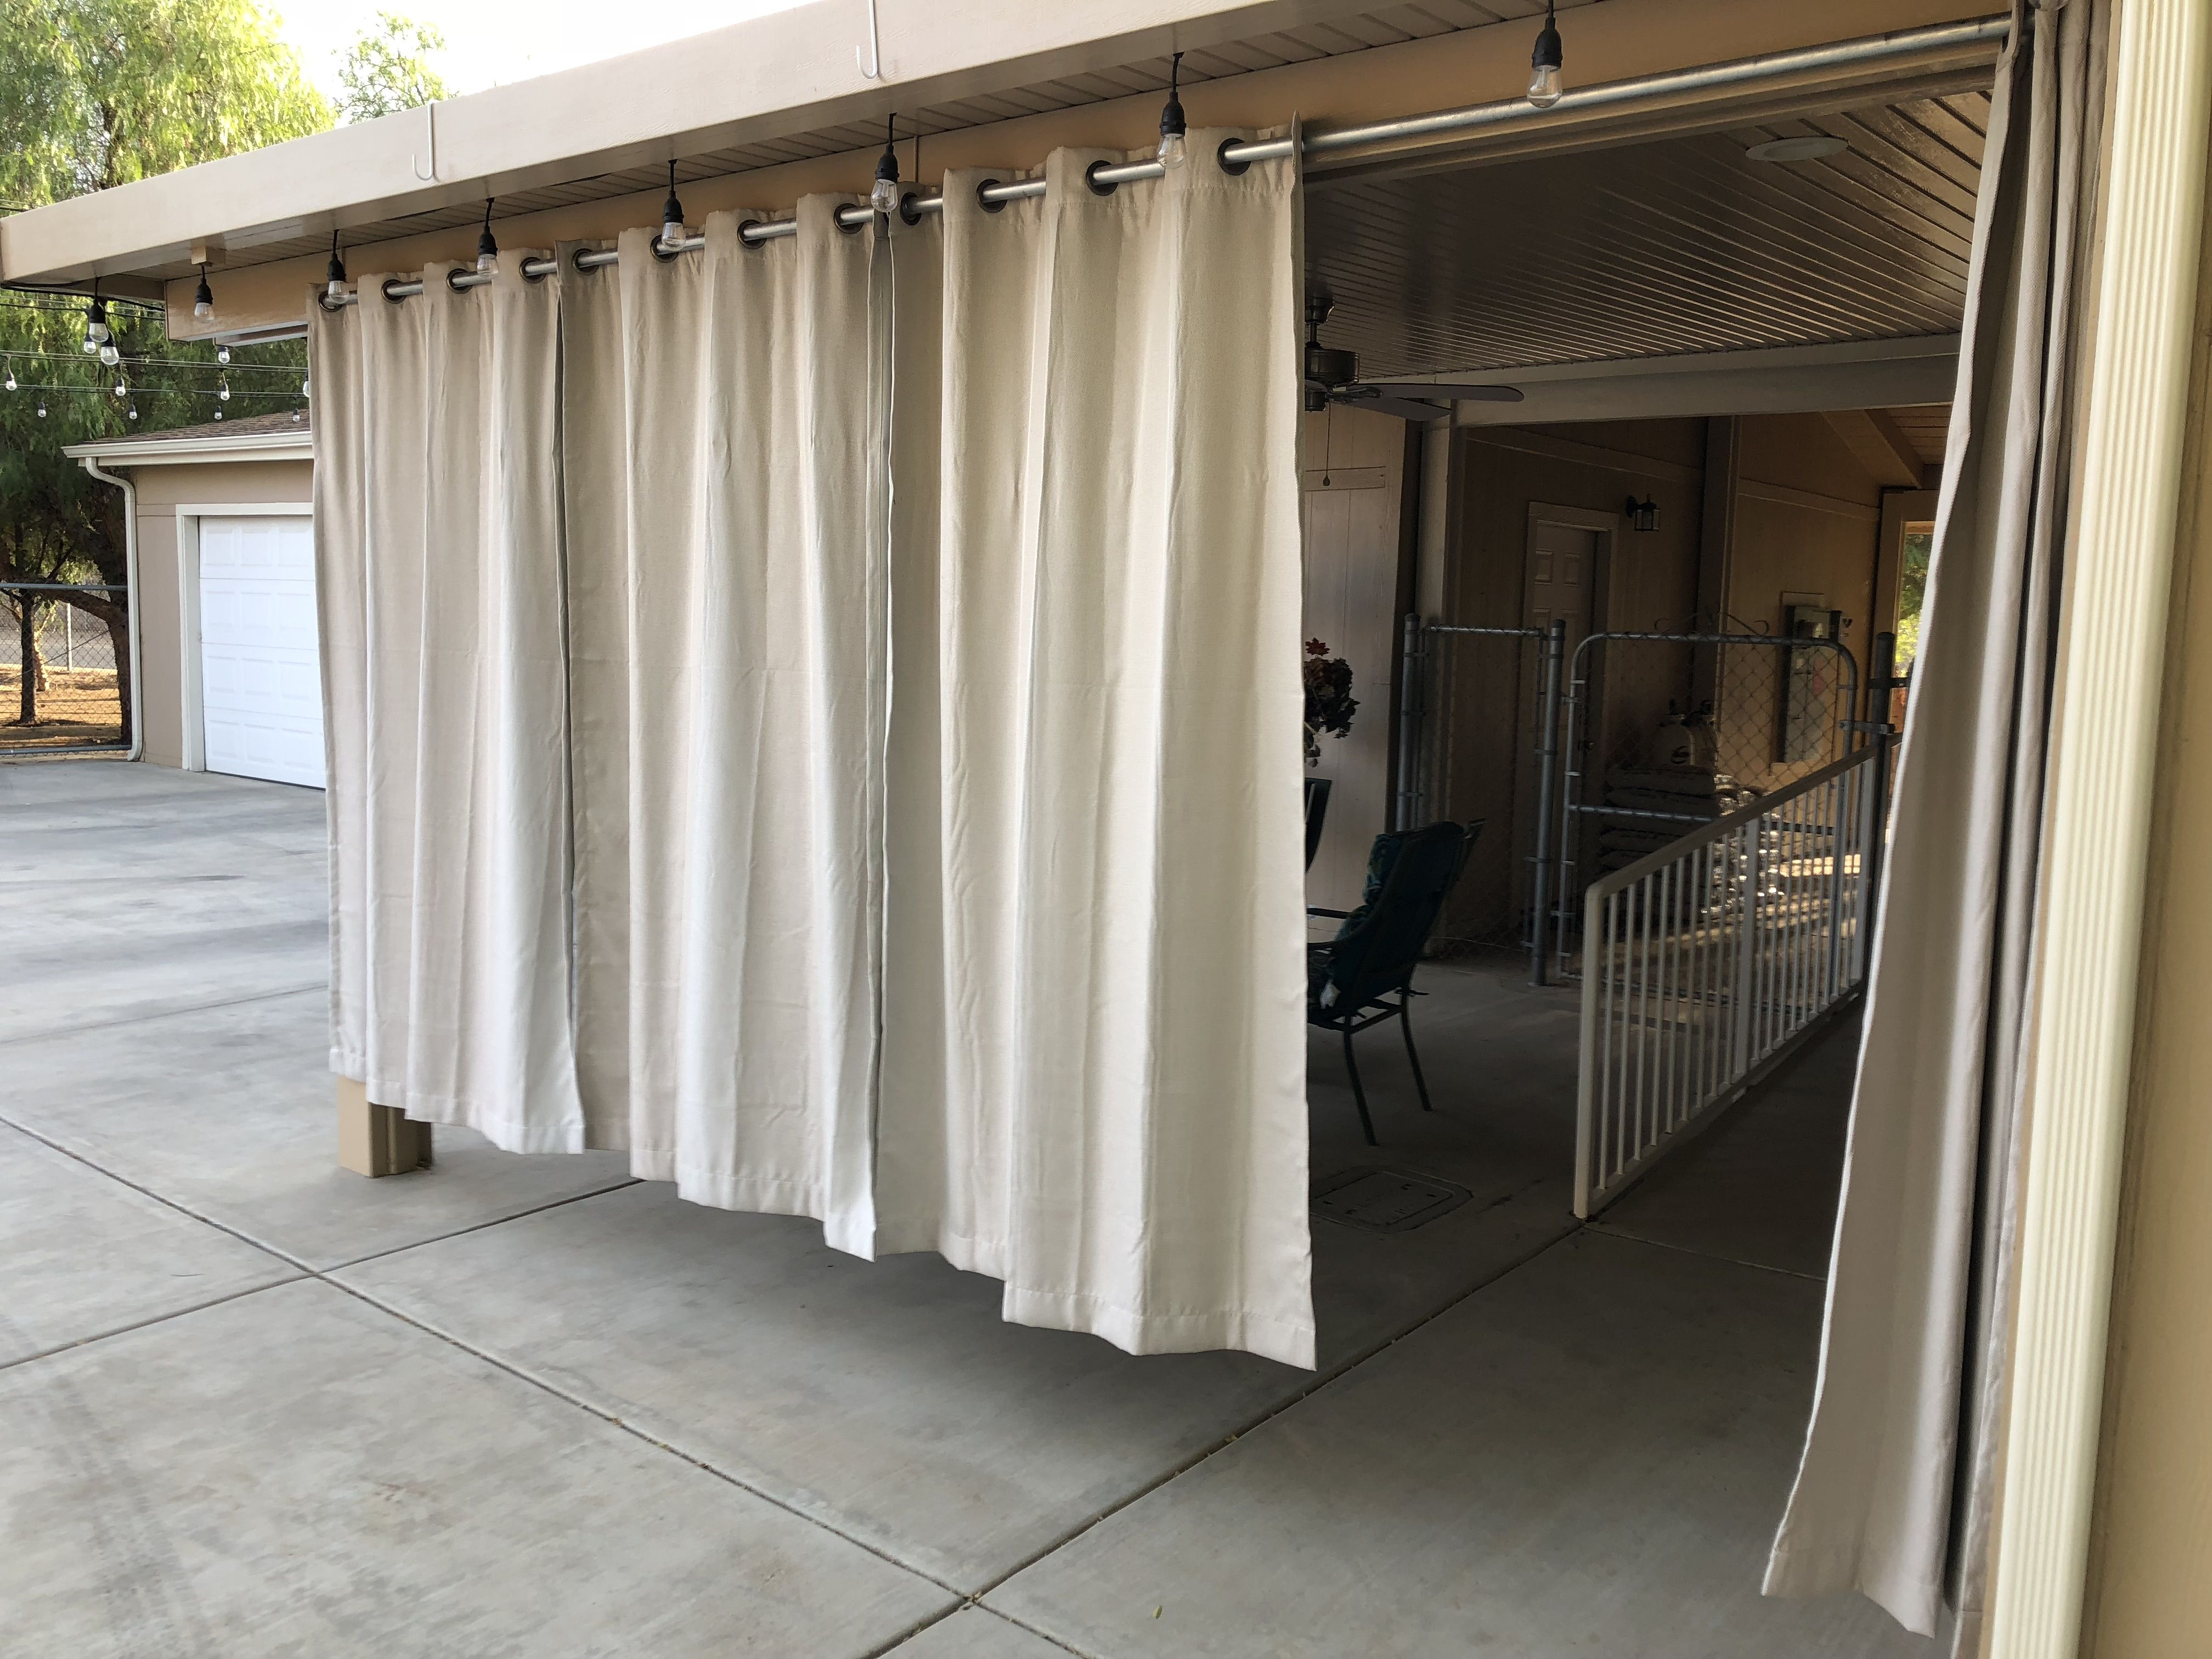 Hang Drapes On Your Alumawood Patio Cover Aluminum Patio Covers Outdoor Patio Drapes Patio Drapes